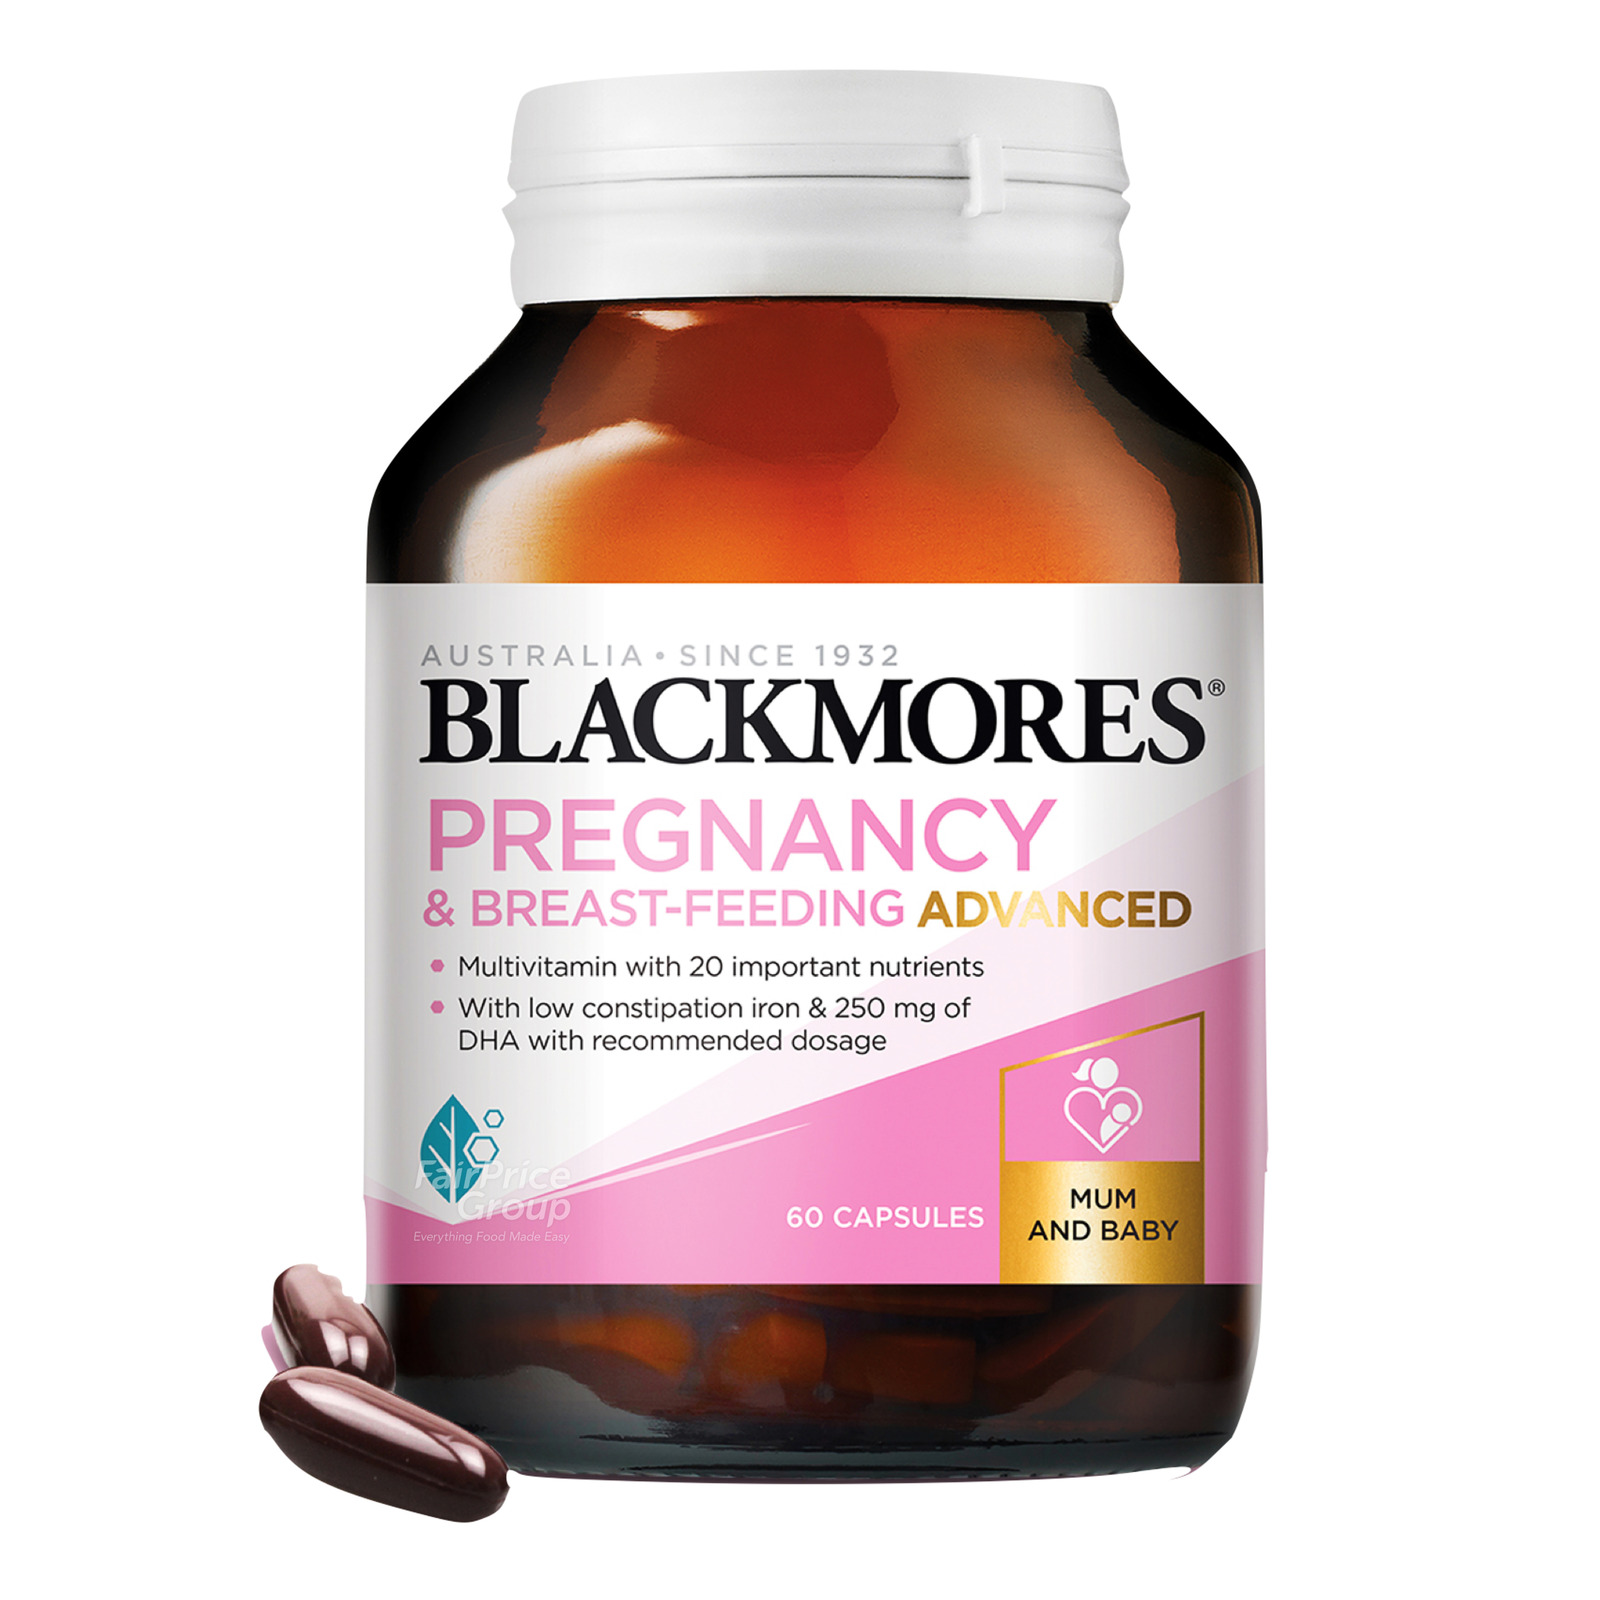 Blackmores Pregnancy Supplement - Breast-Feeding Advanced